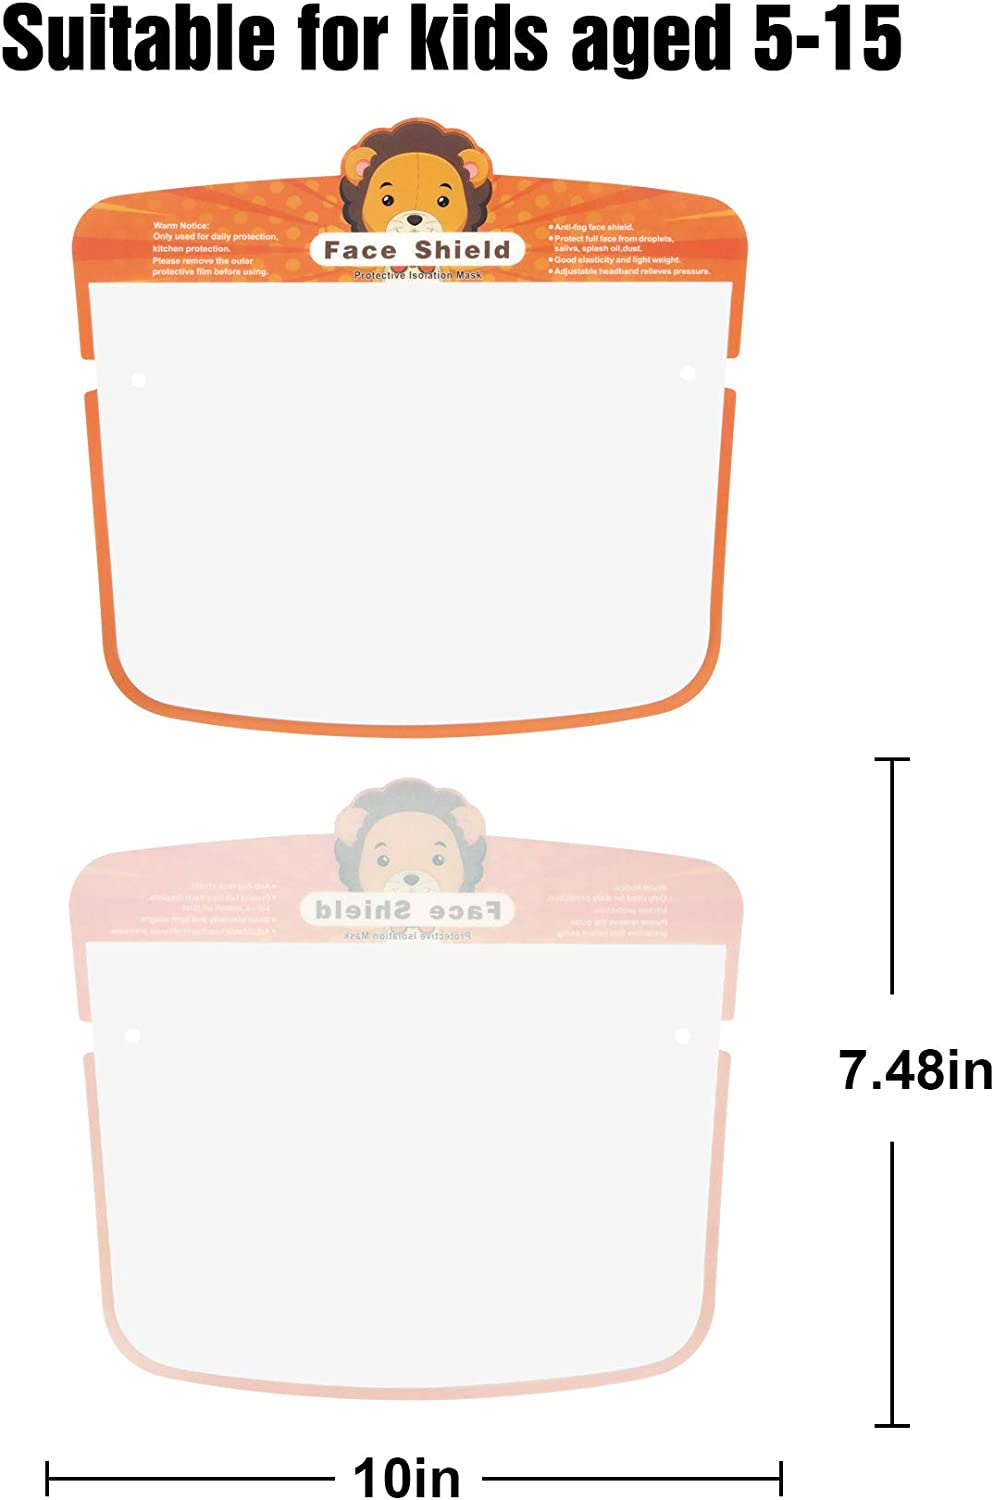 Lood 【Shipment from USA】 4 pcs Kids Face Transparent Bandanas with Clear Window Visible Expre,Elastic Band,Breathable Comfortable